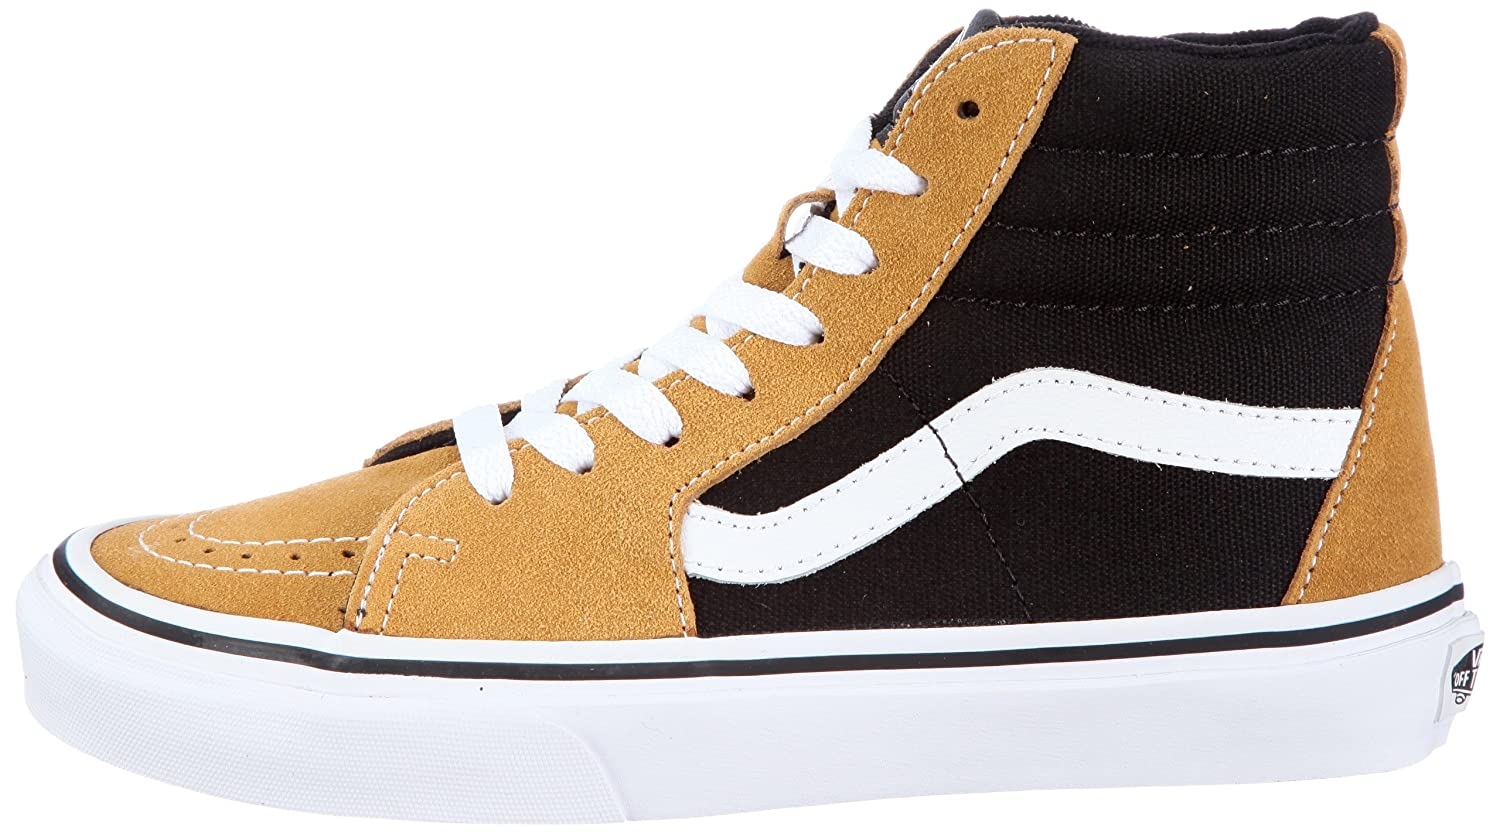 c0aba9132ff662 Vans Unisex - Adults Sk8-Hi (Suede) Honey Mustard Black Trainers Vkya5O3 Suede  Honey Mustard Black 7 UK  Amazon.co.uk  Shoes   Bags